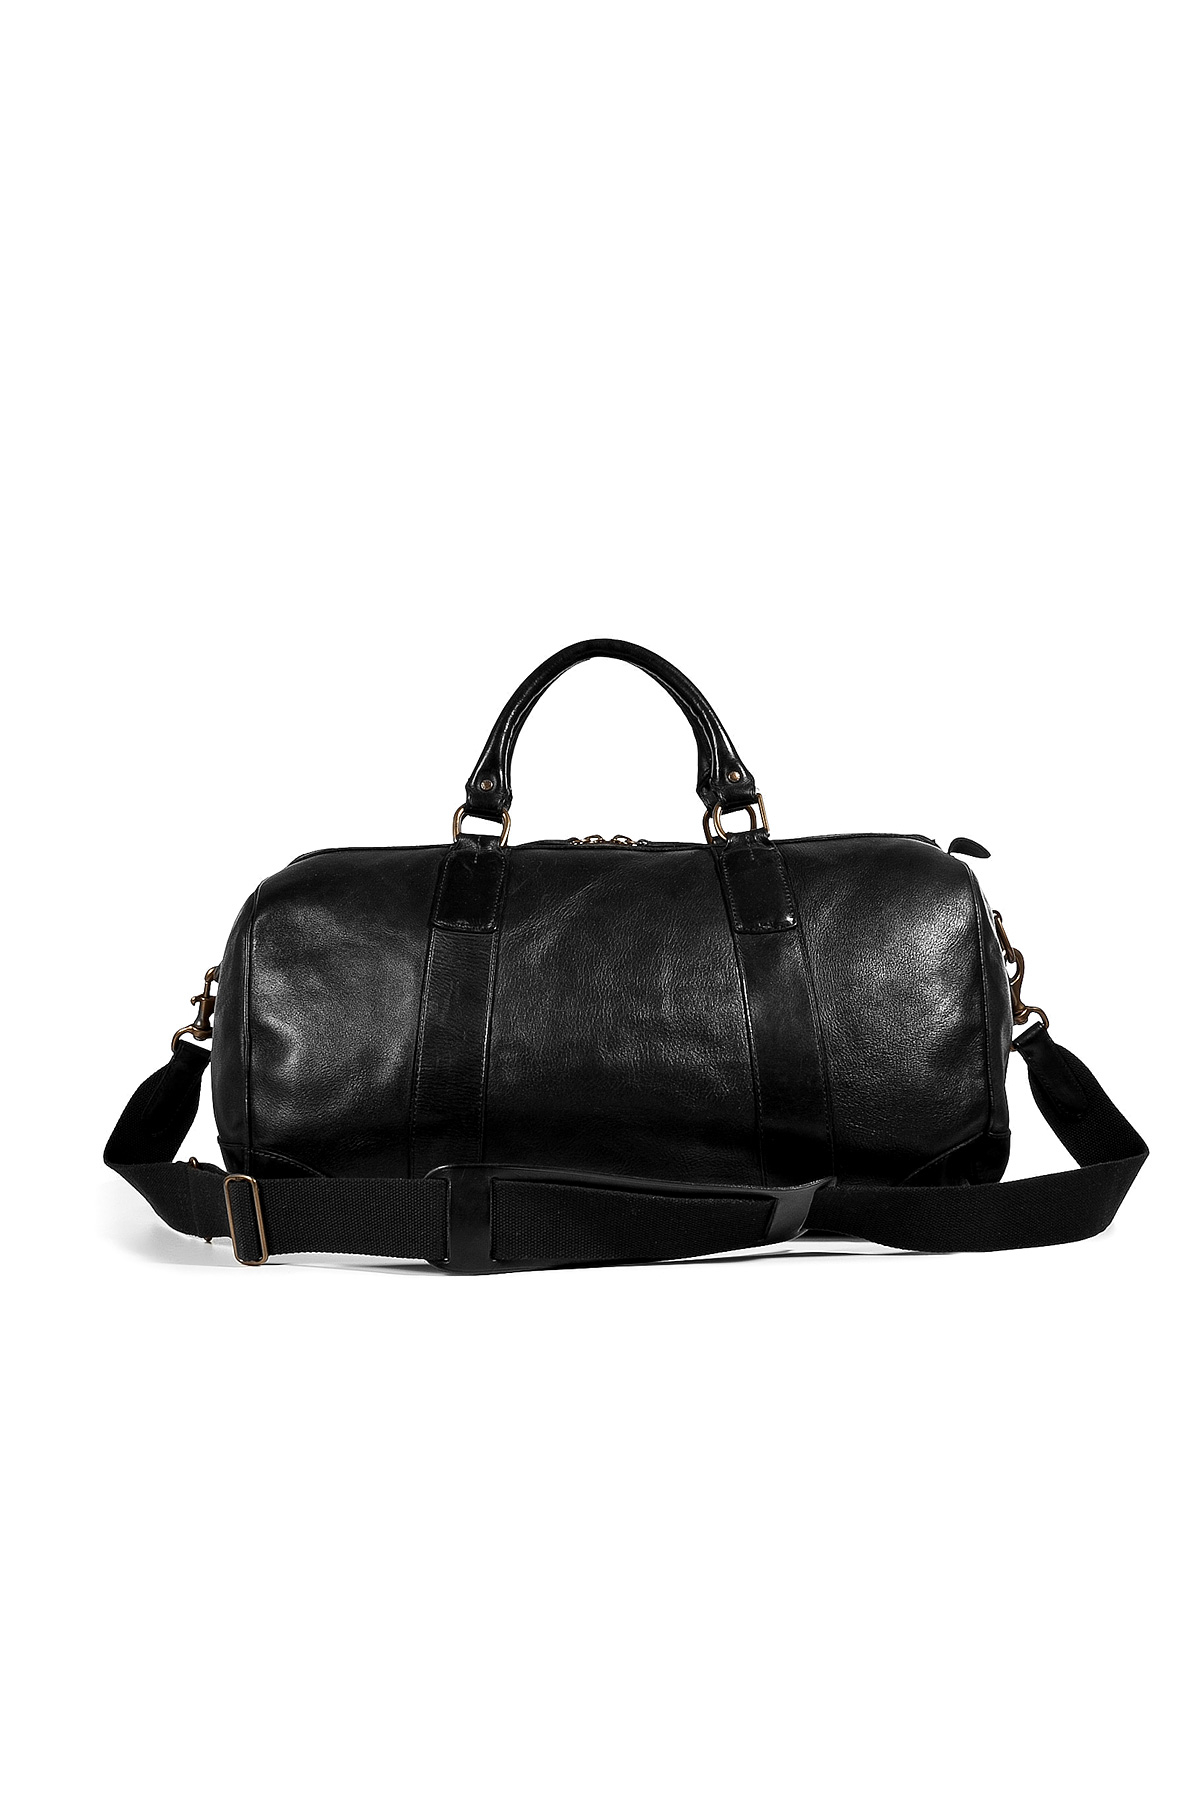 8748a6a1786e ... discount lyst polo ralph lauren leather overnight duffle bag in black  for men 2015e 7c3ed